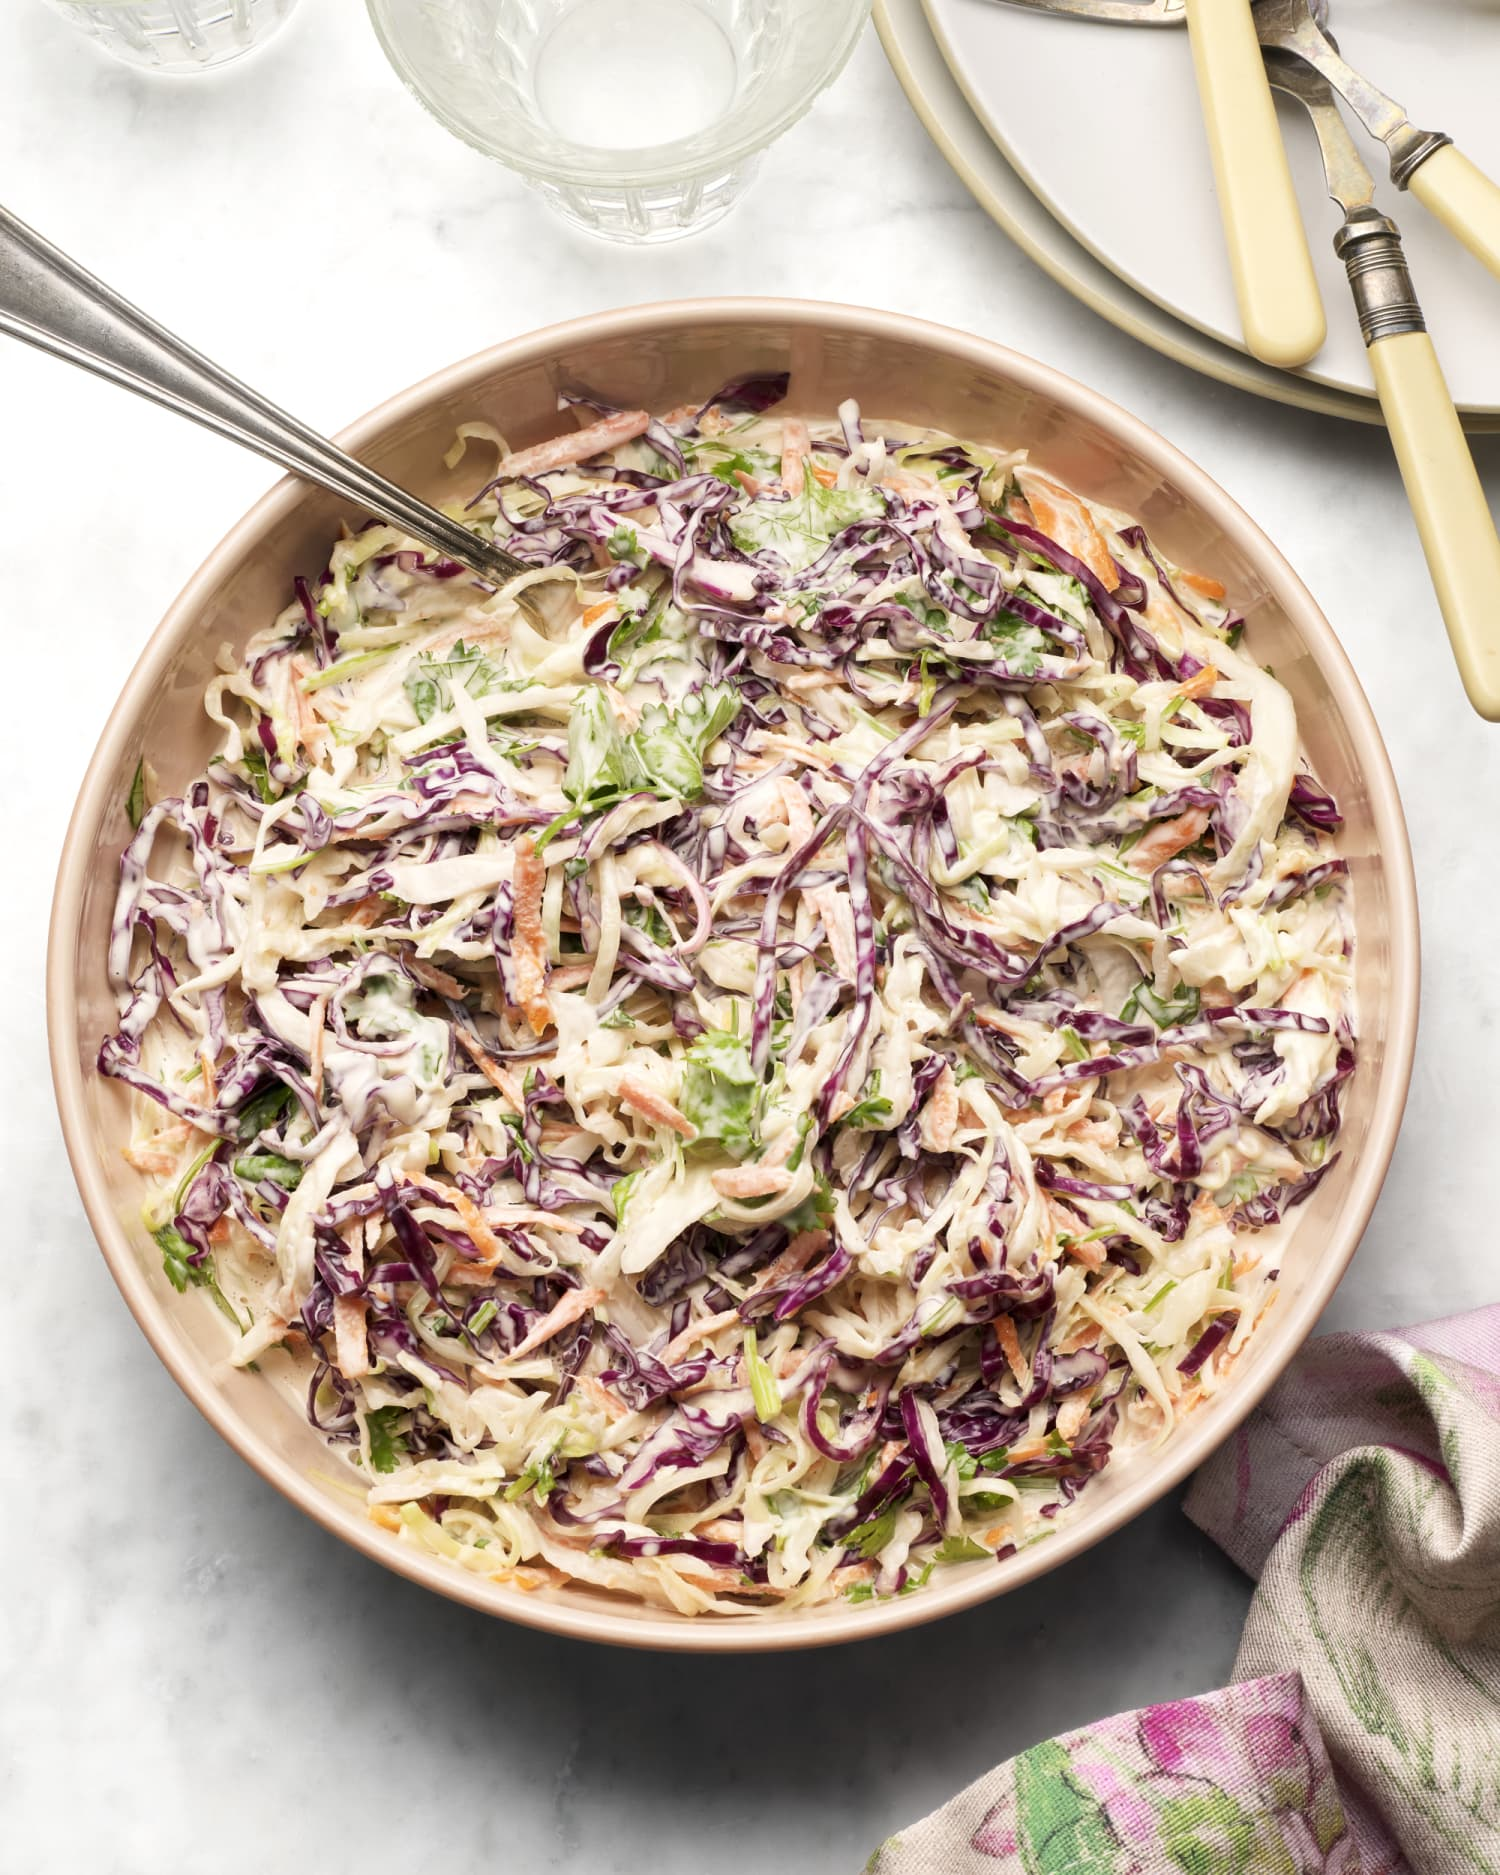 Cilantro Lime Coleslaw Is a Make-Ahead Side That Will Get Major Attention